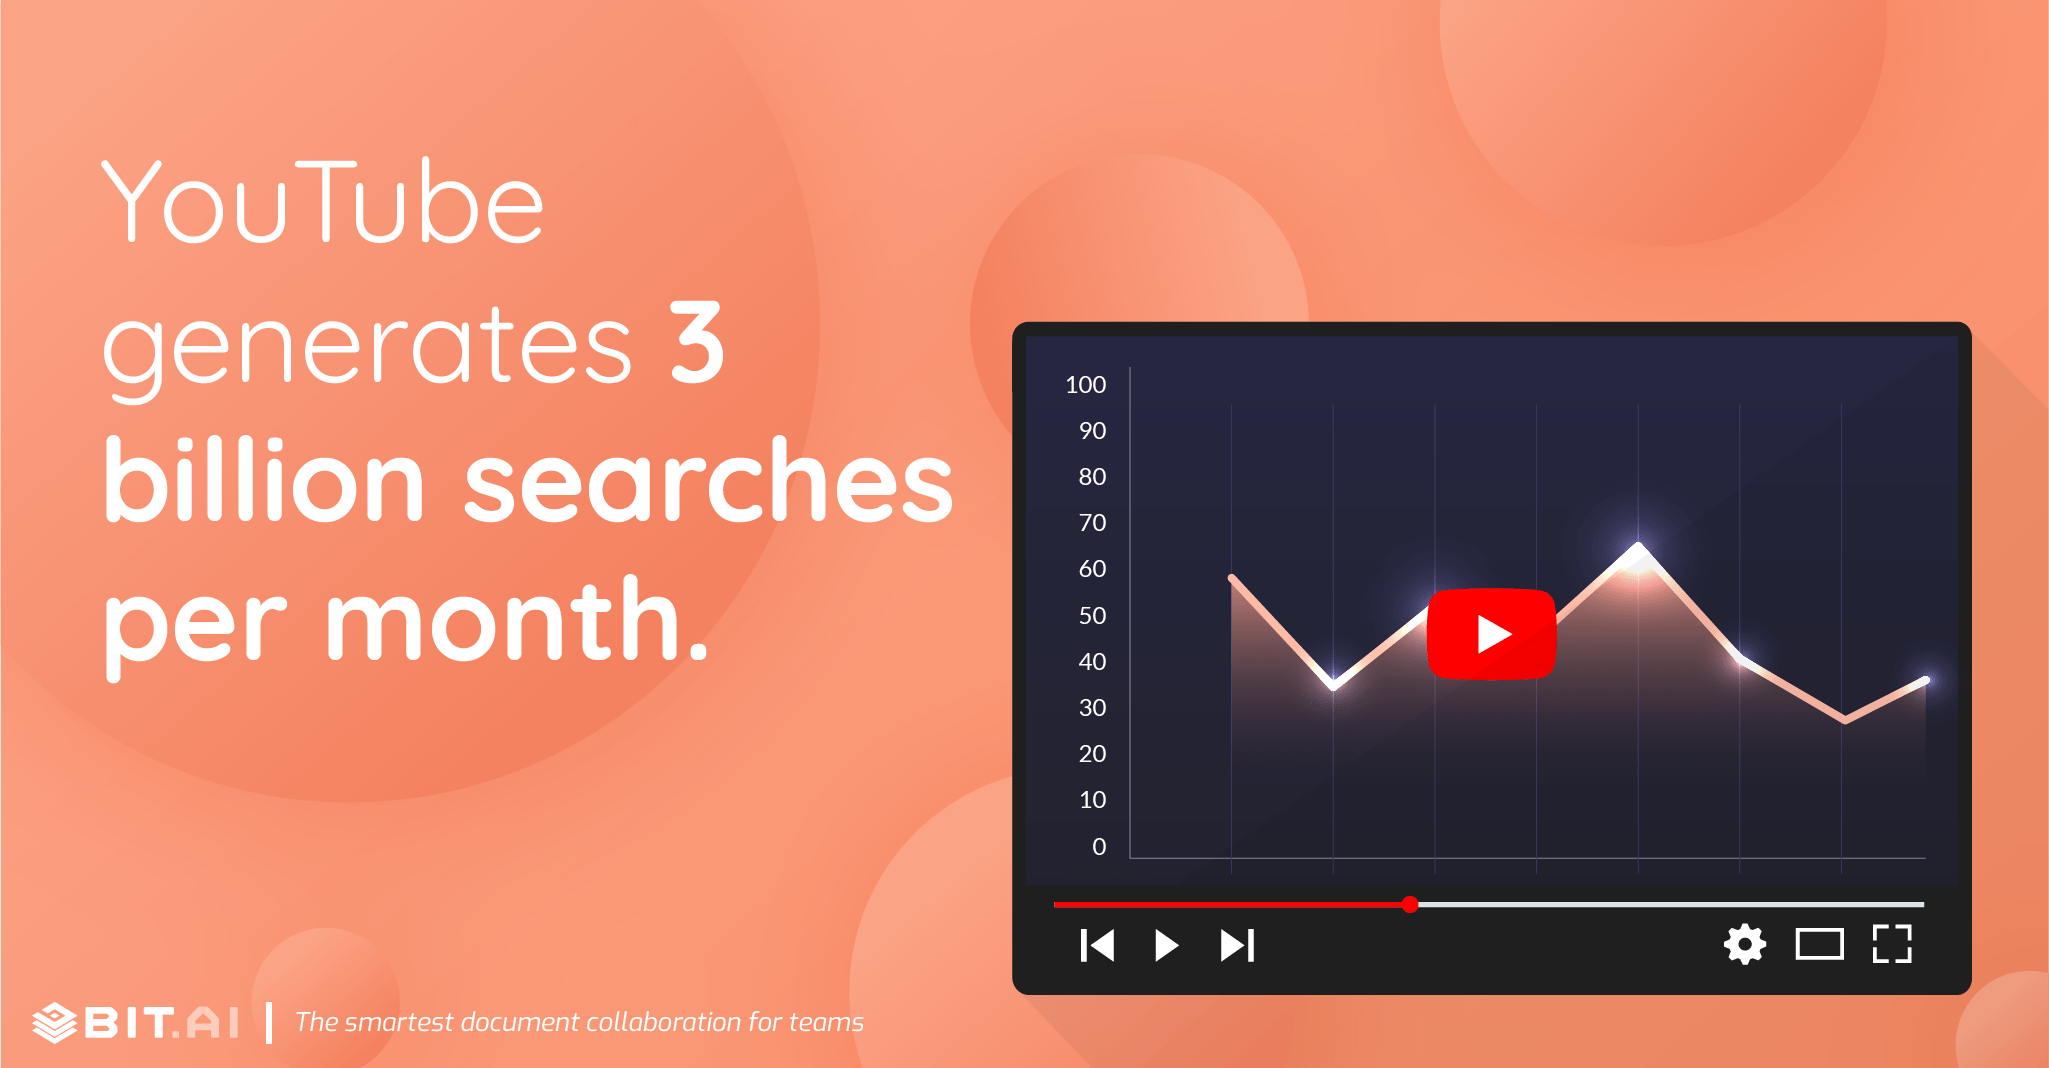 YouTube generates 3 billion searches per month.